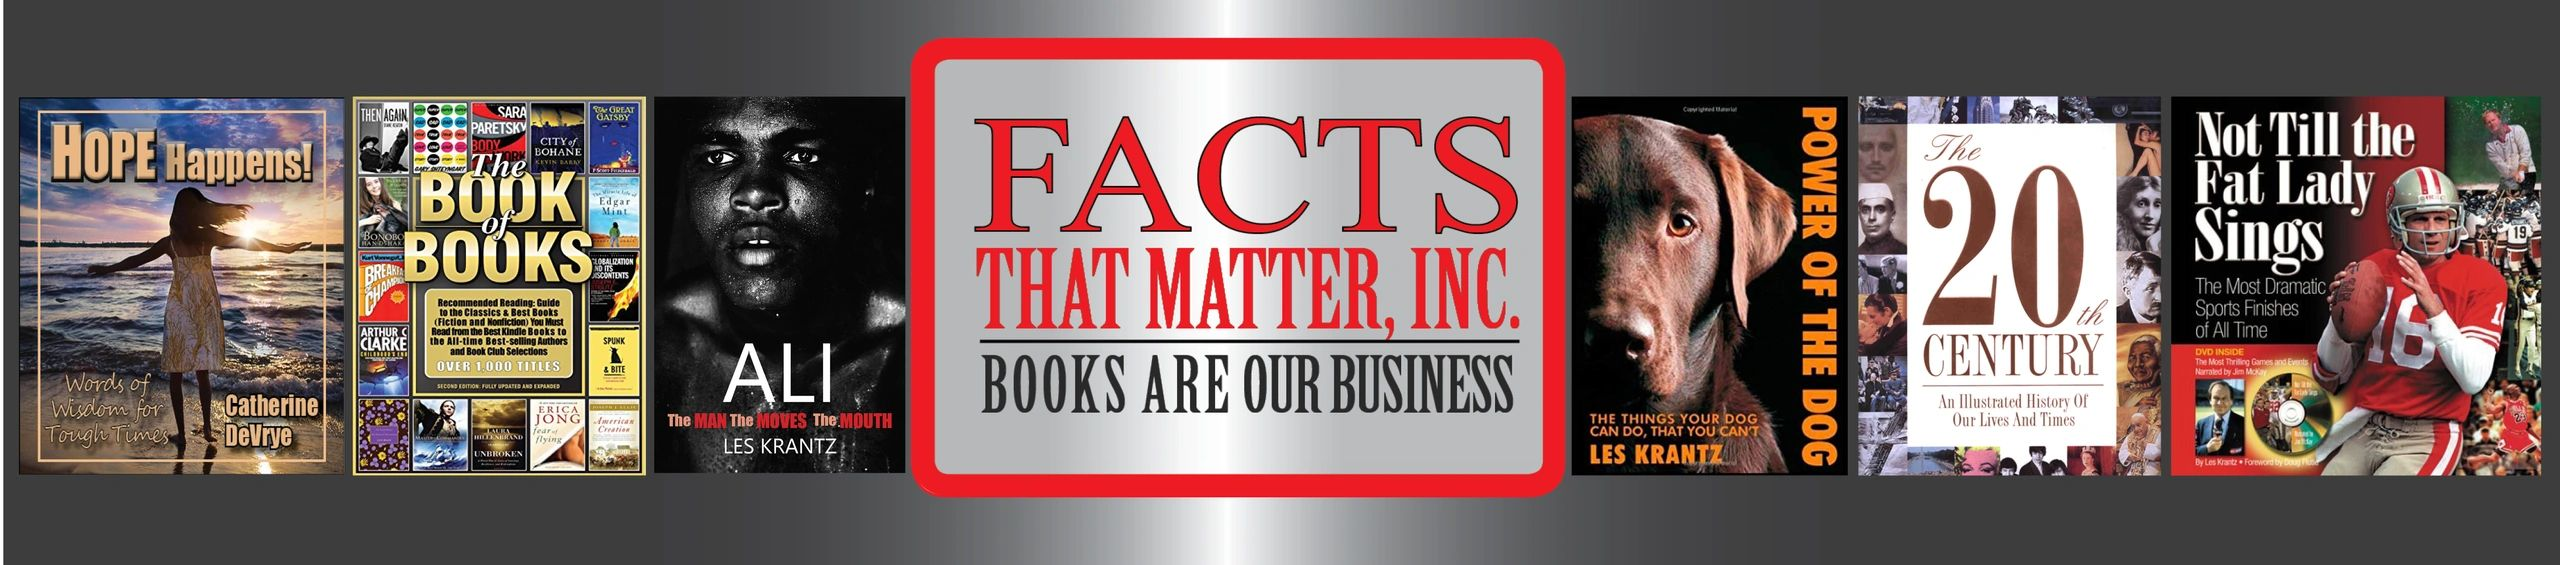 Facts That Matter Facts That Matter, Inc Les Krantz